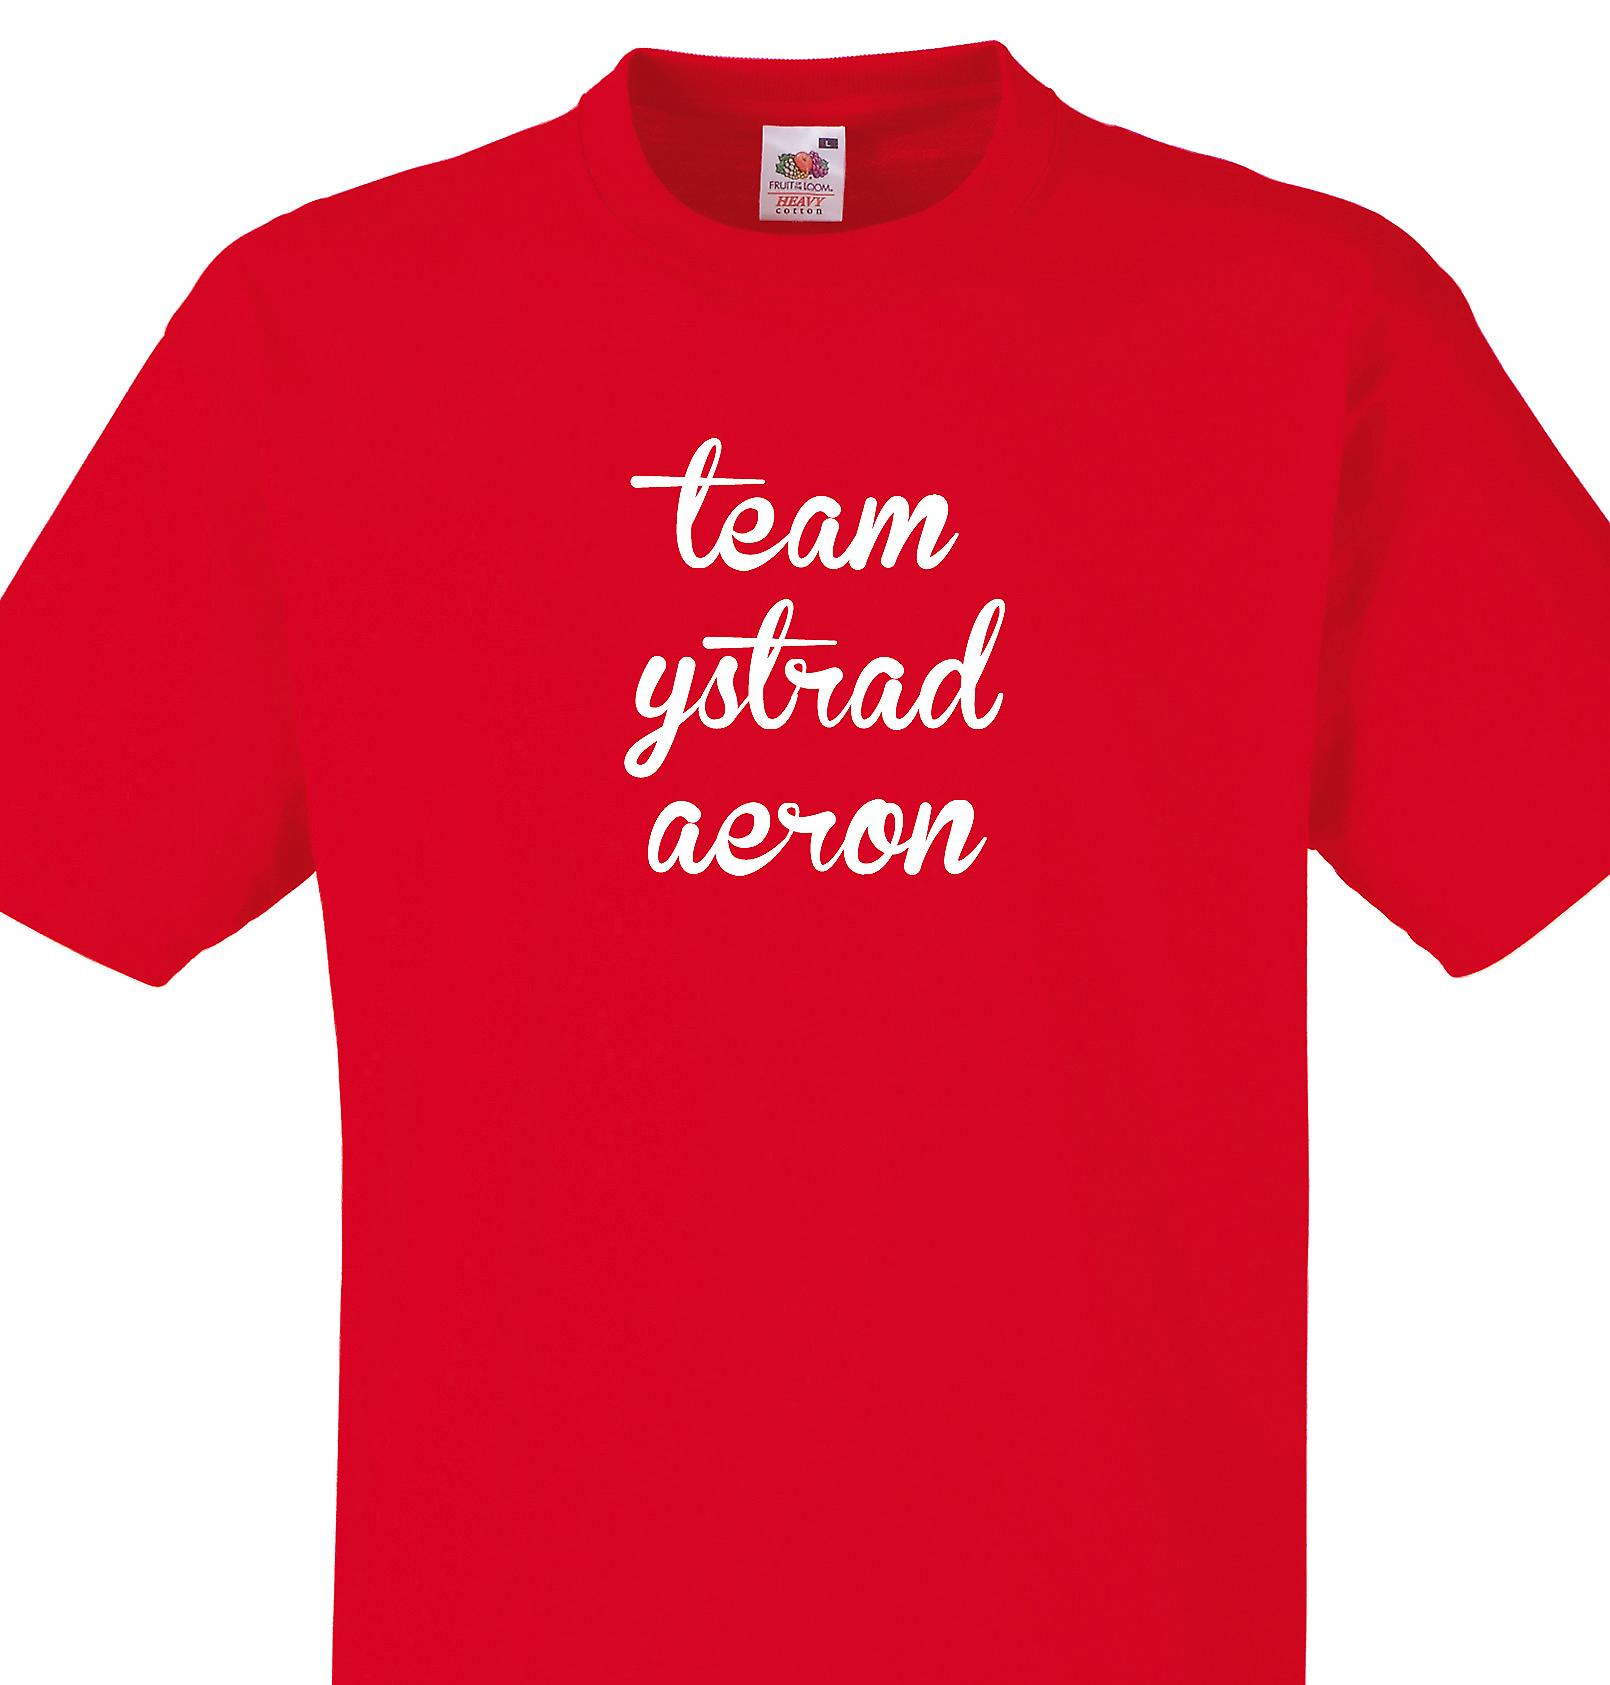 Team Ystrad aeron Red T shirt